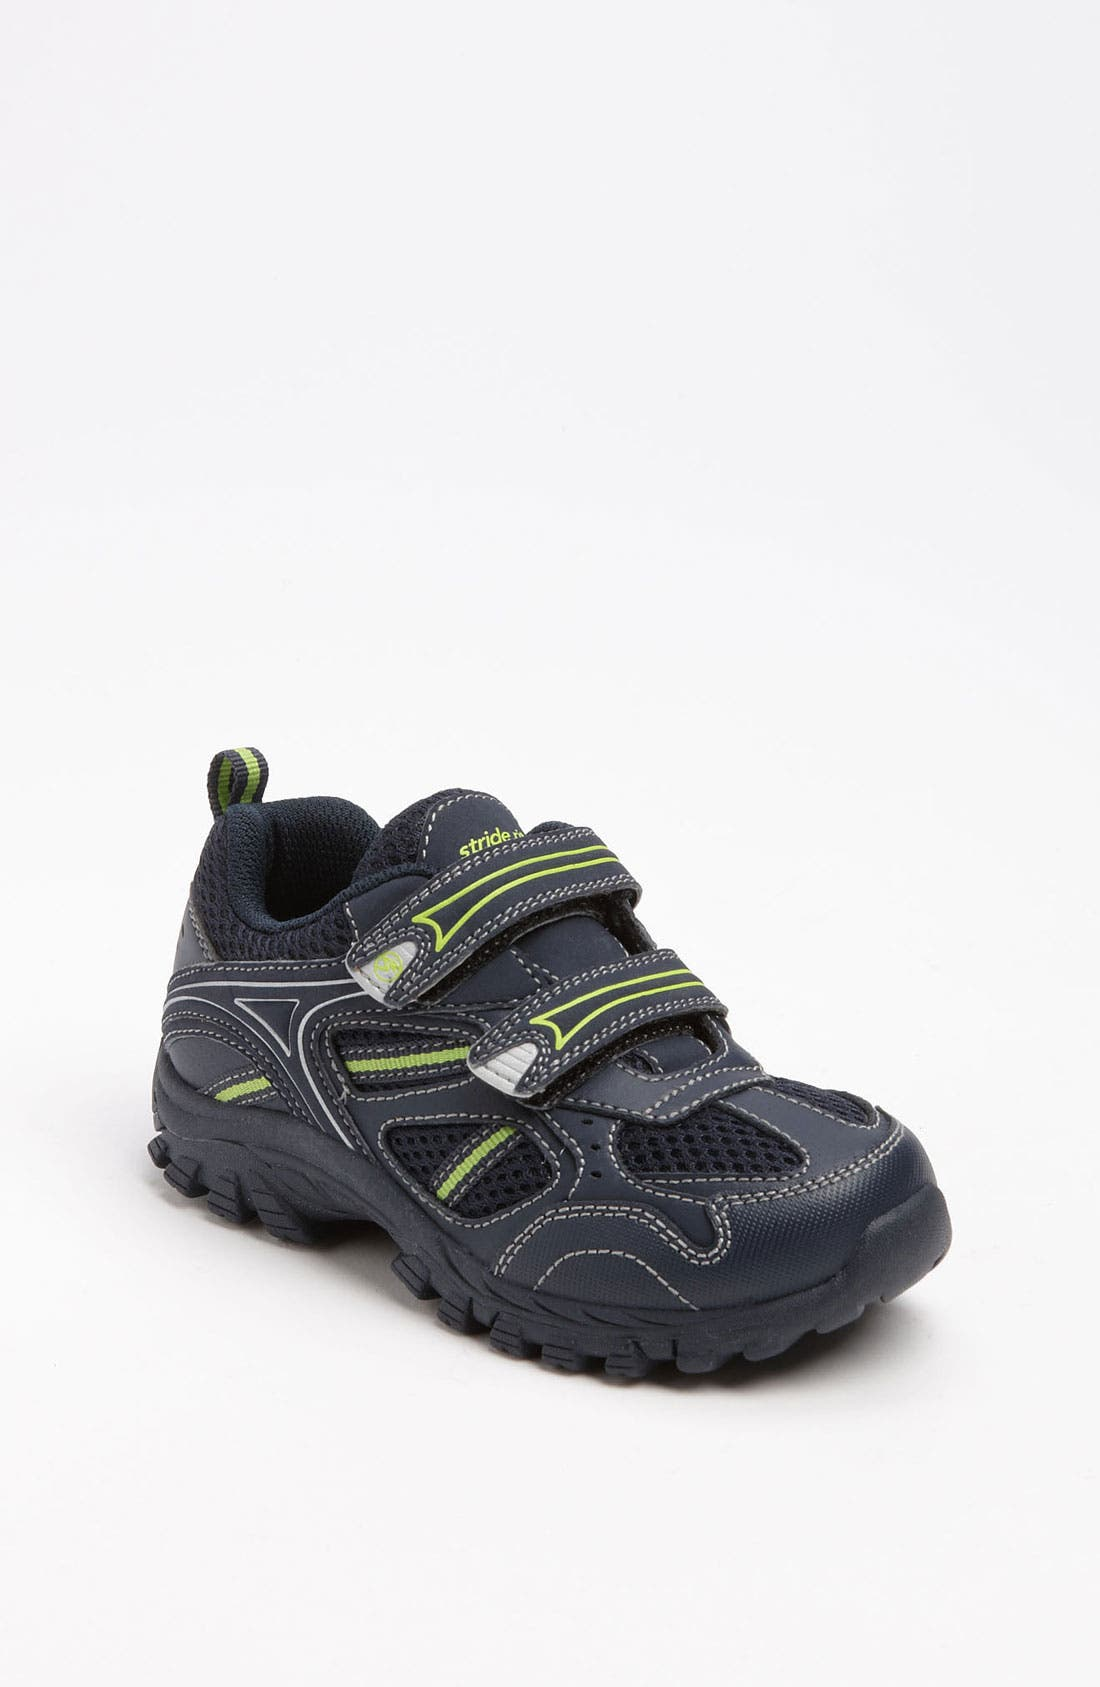 Alternate Image 1 Selected - Stride Rite 'Dallas' Sneaker (Baby, Walker, Toddler & Little Kid)